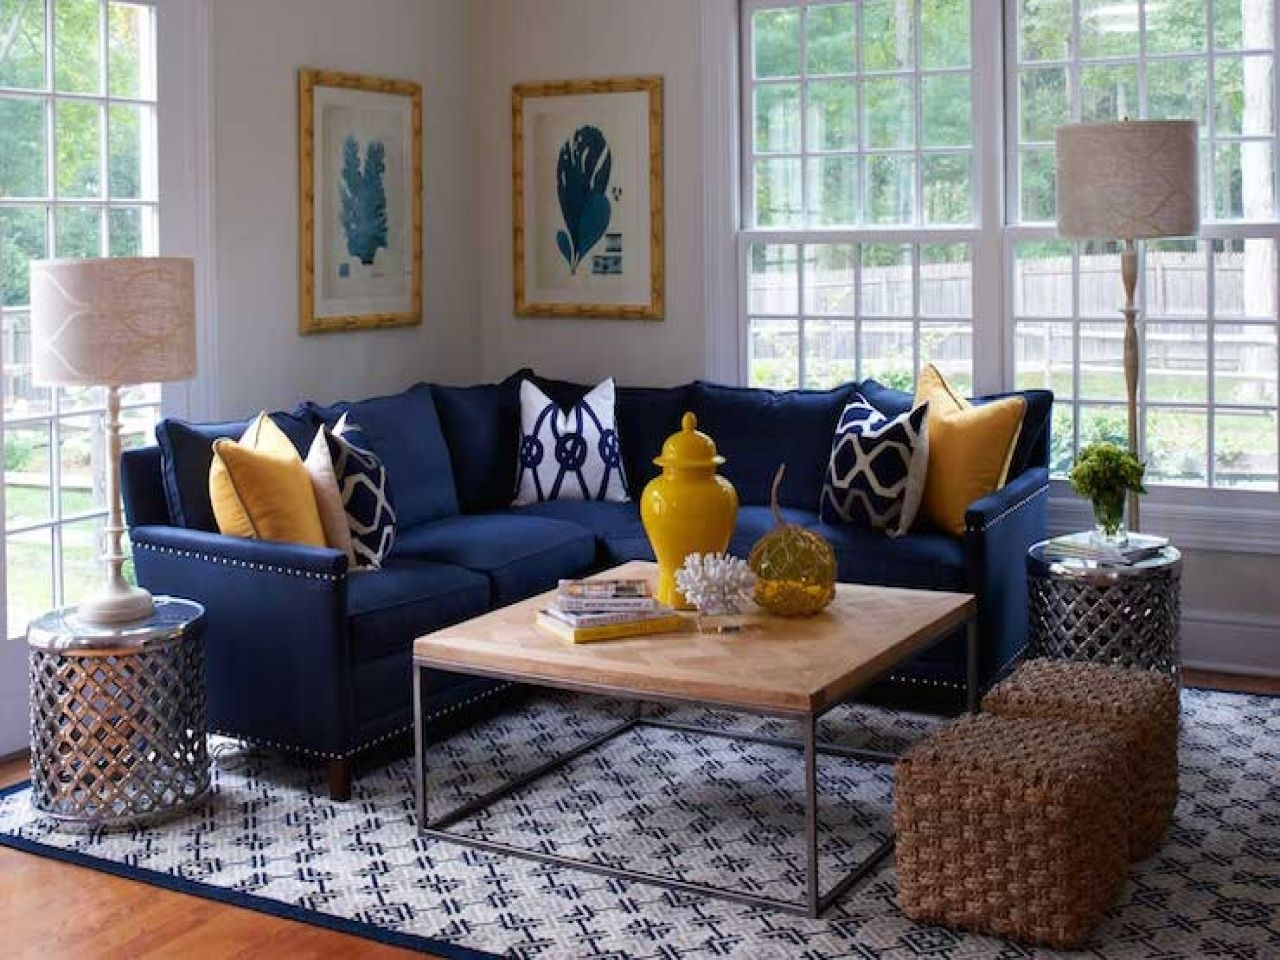 جدوى مهنة منهاج دراسي Blue Sofa Living Room Ideas Findlocal Drivewayrepair Com